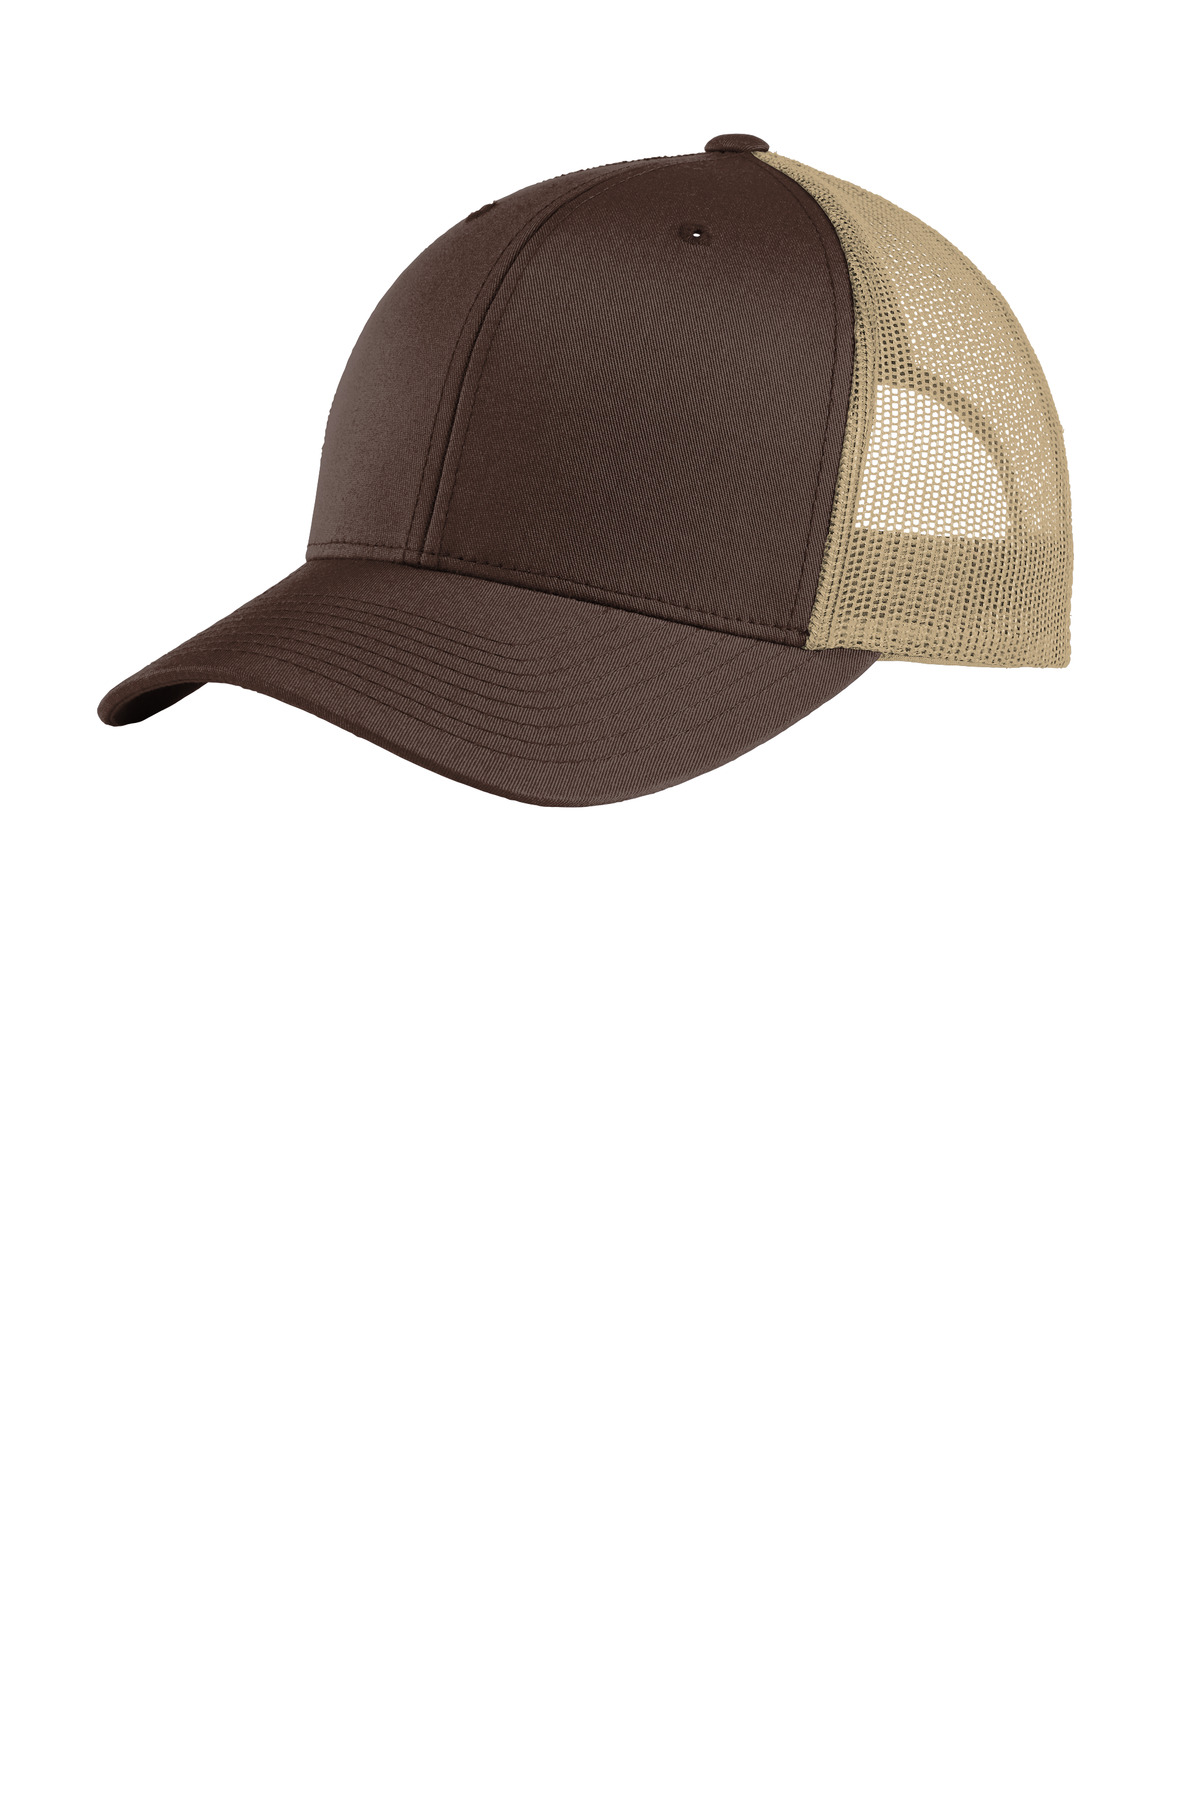 Sport-Tek  ®  Yupoong  ®  Retro Trucker Cap. STC39 - Chocolate Brown/ Khaki